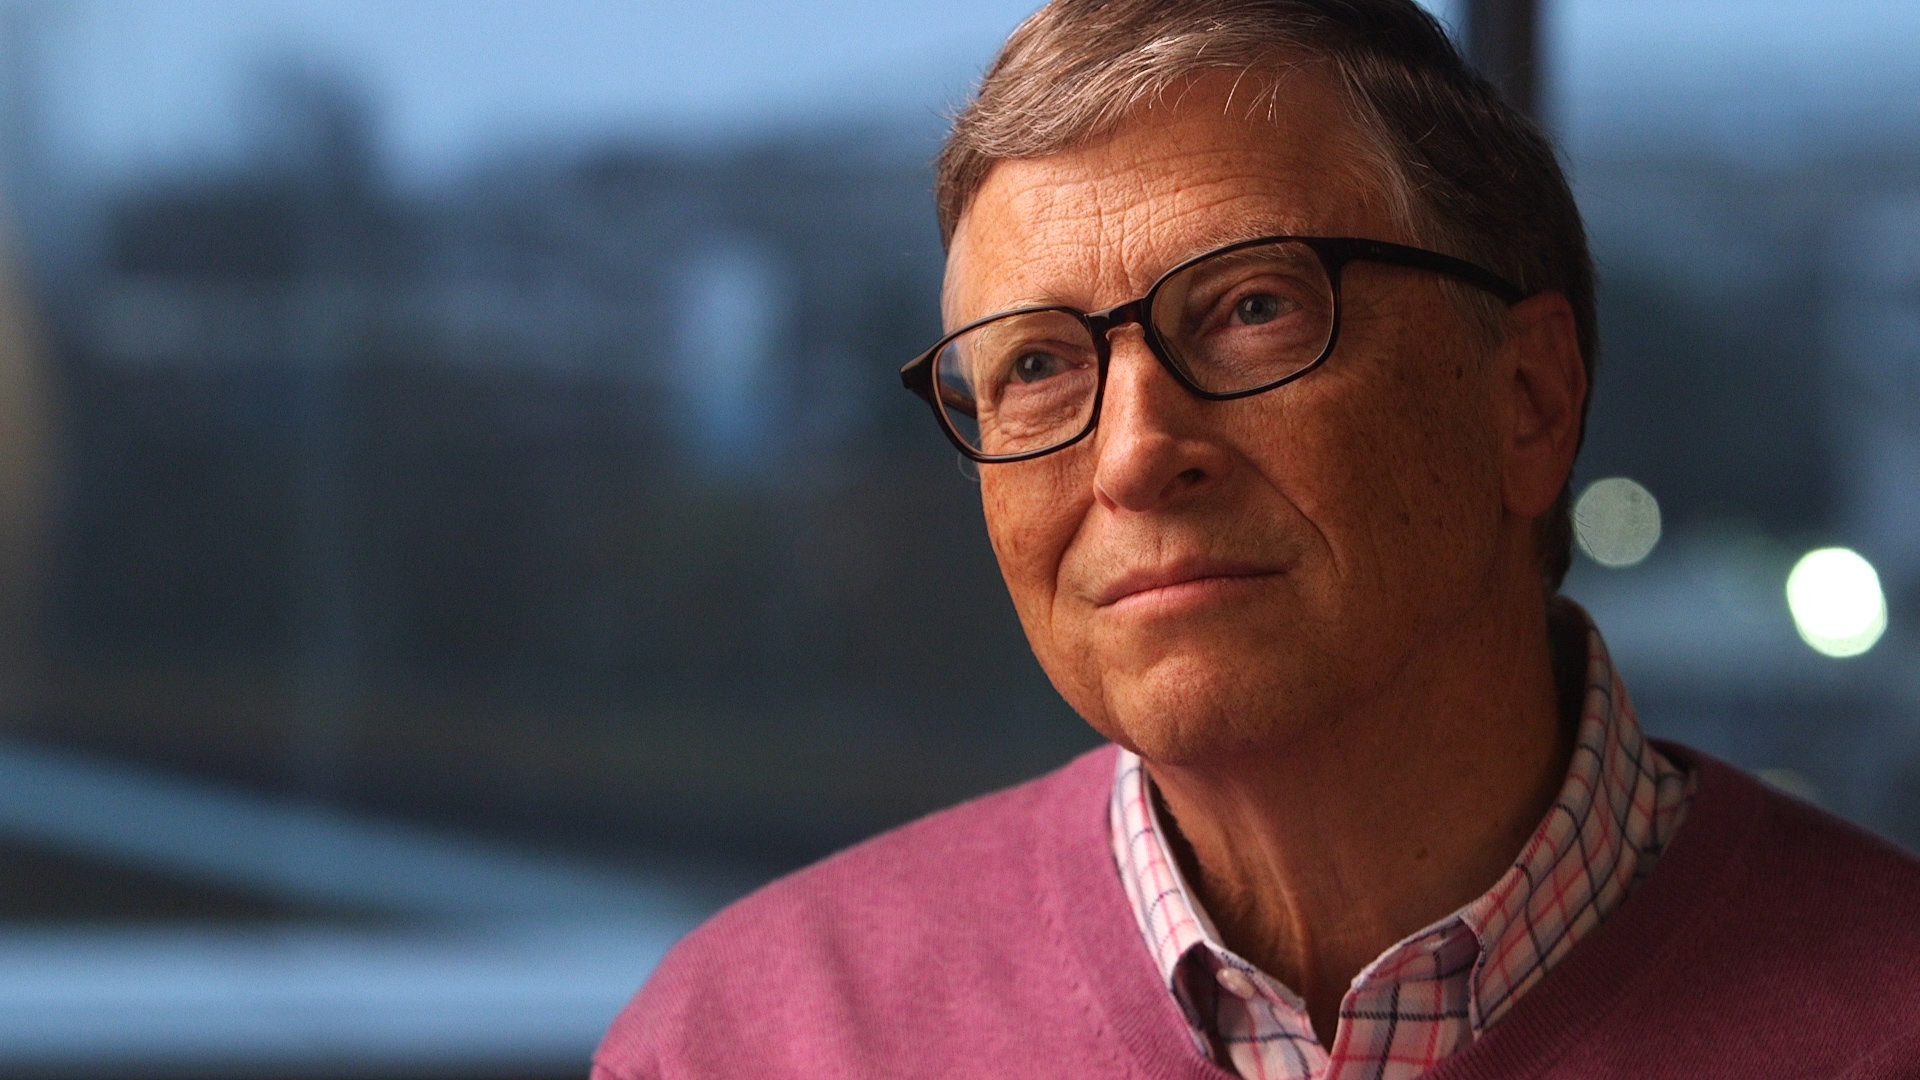 As of August 6, 2018, William Henry Gates III had a net worth of $95.4 billion, making him the second-richest person in the world, behind JeffBezos.